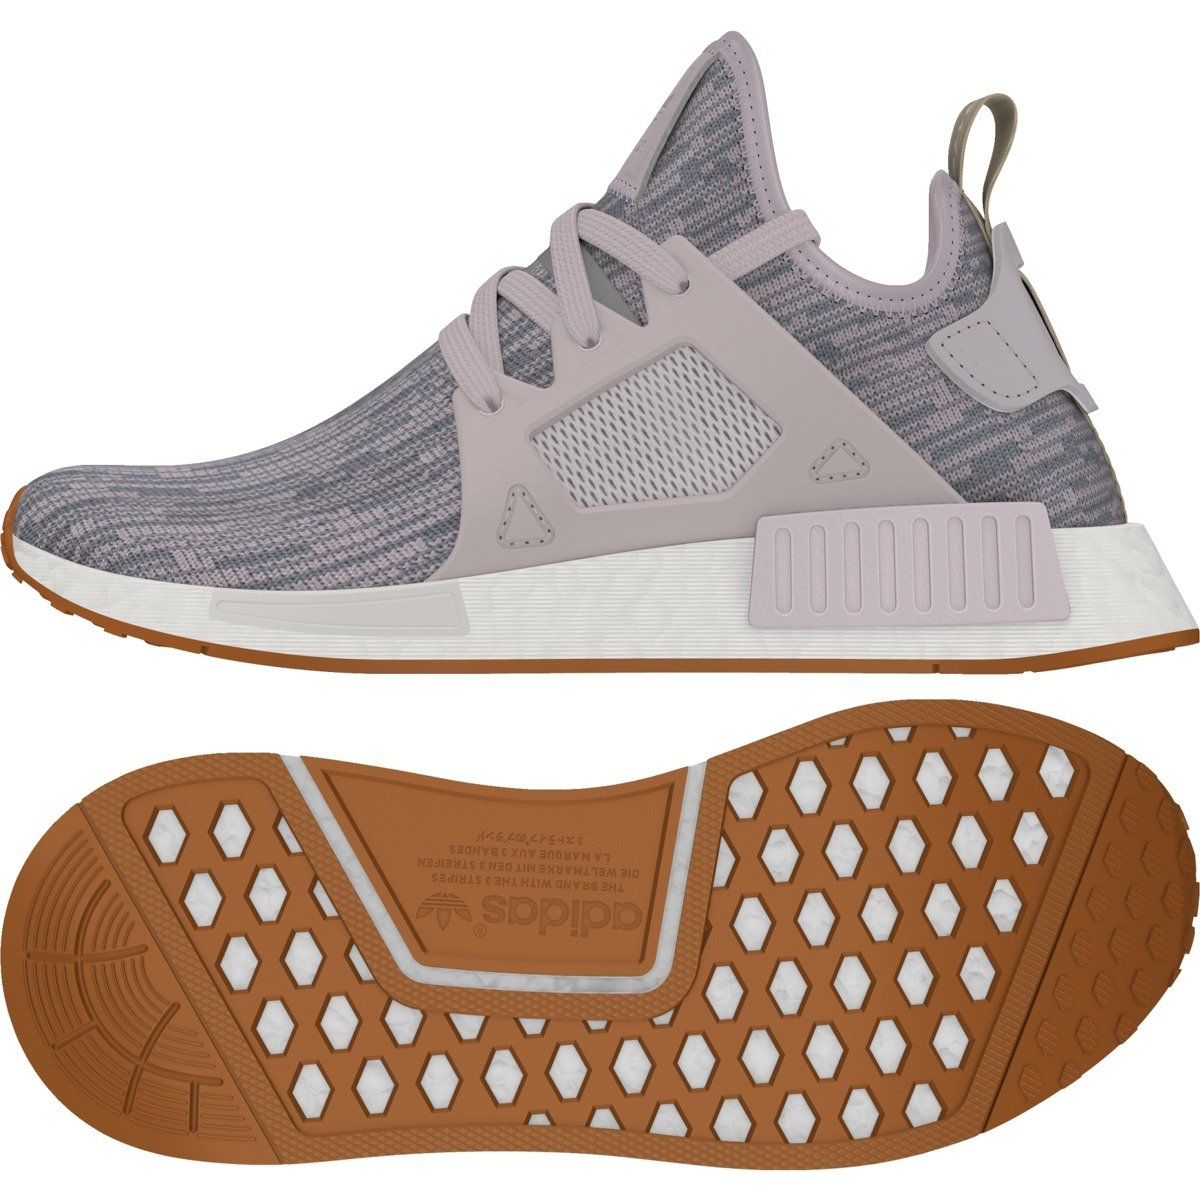 36bdb62c55825 Buty Adidas NMD XR1 Wmns Ice Purple - BB2367 - Basketo.pl